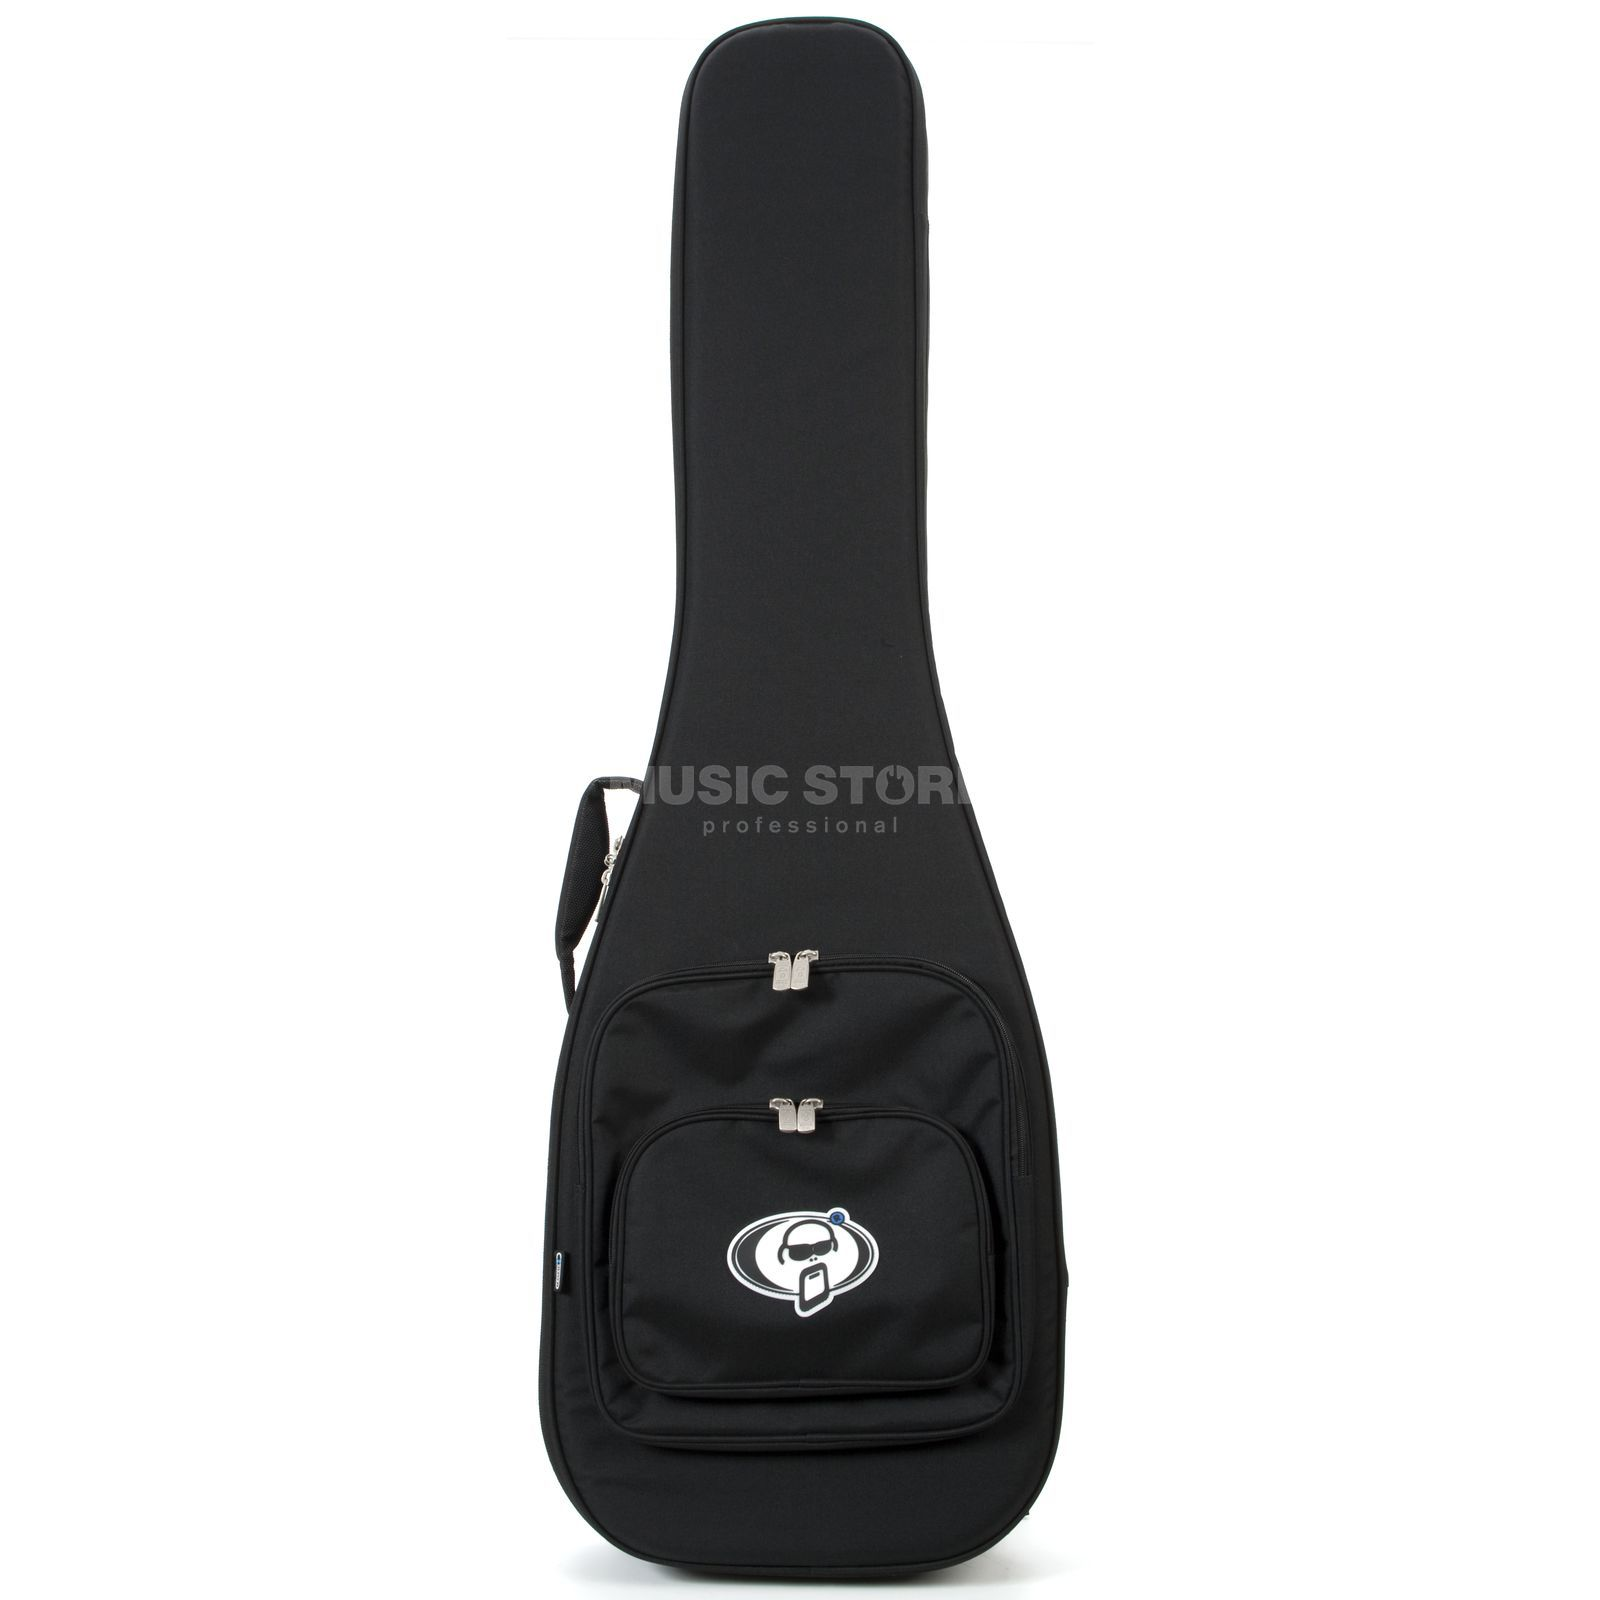 Protection Racket Case Bass Standard 7051  Изображение товара